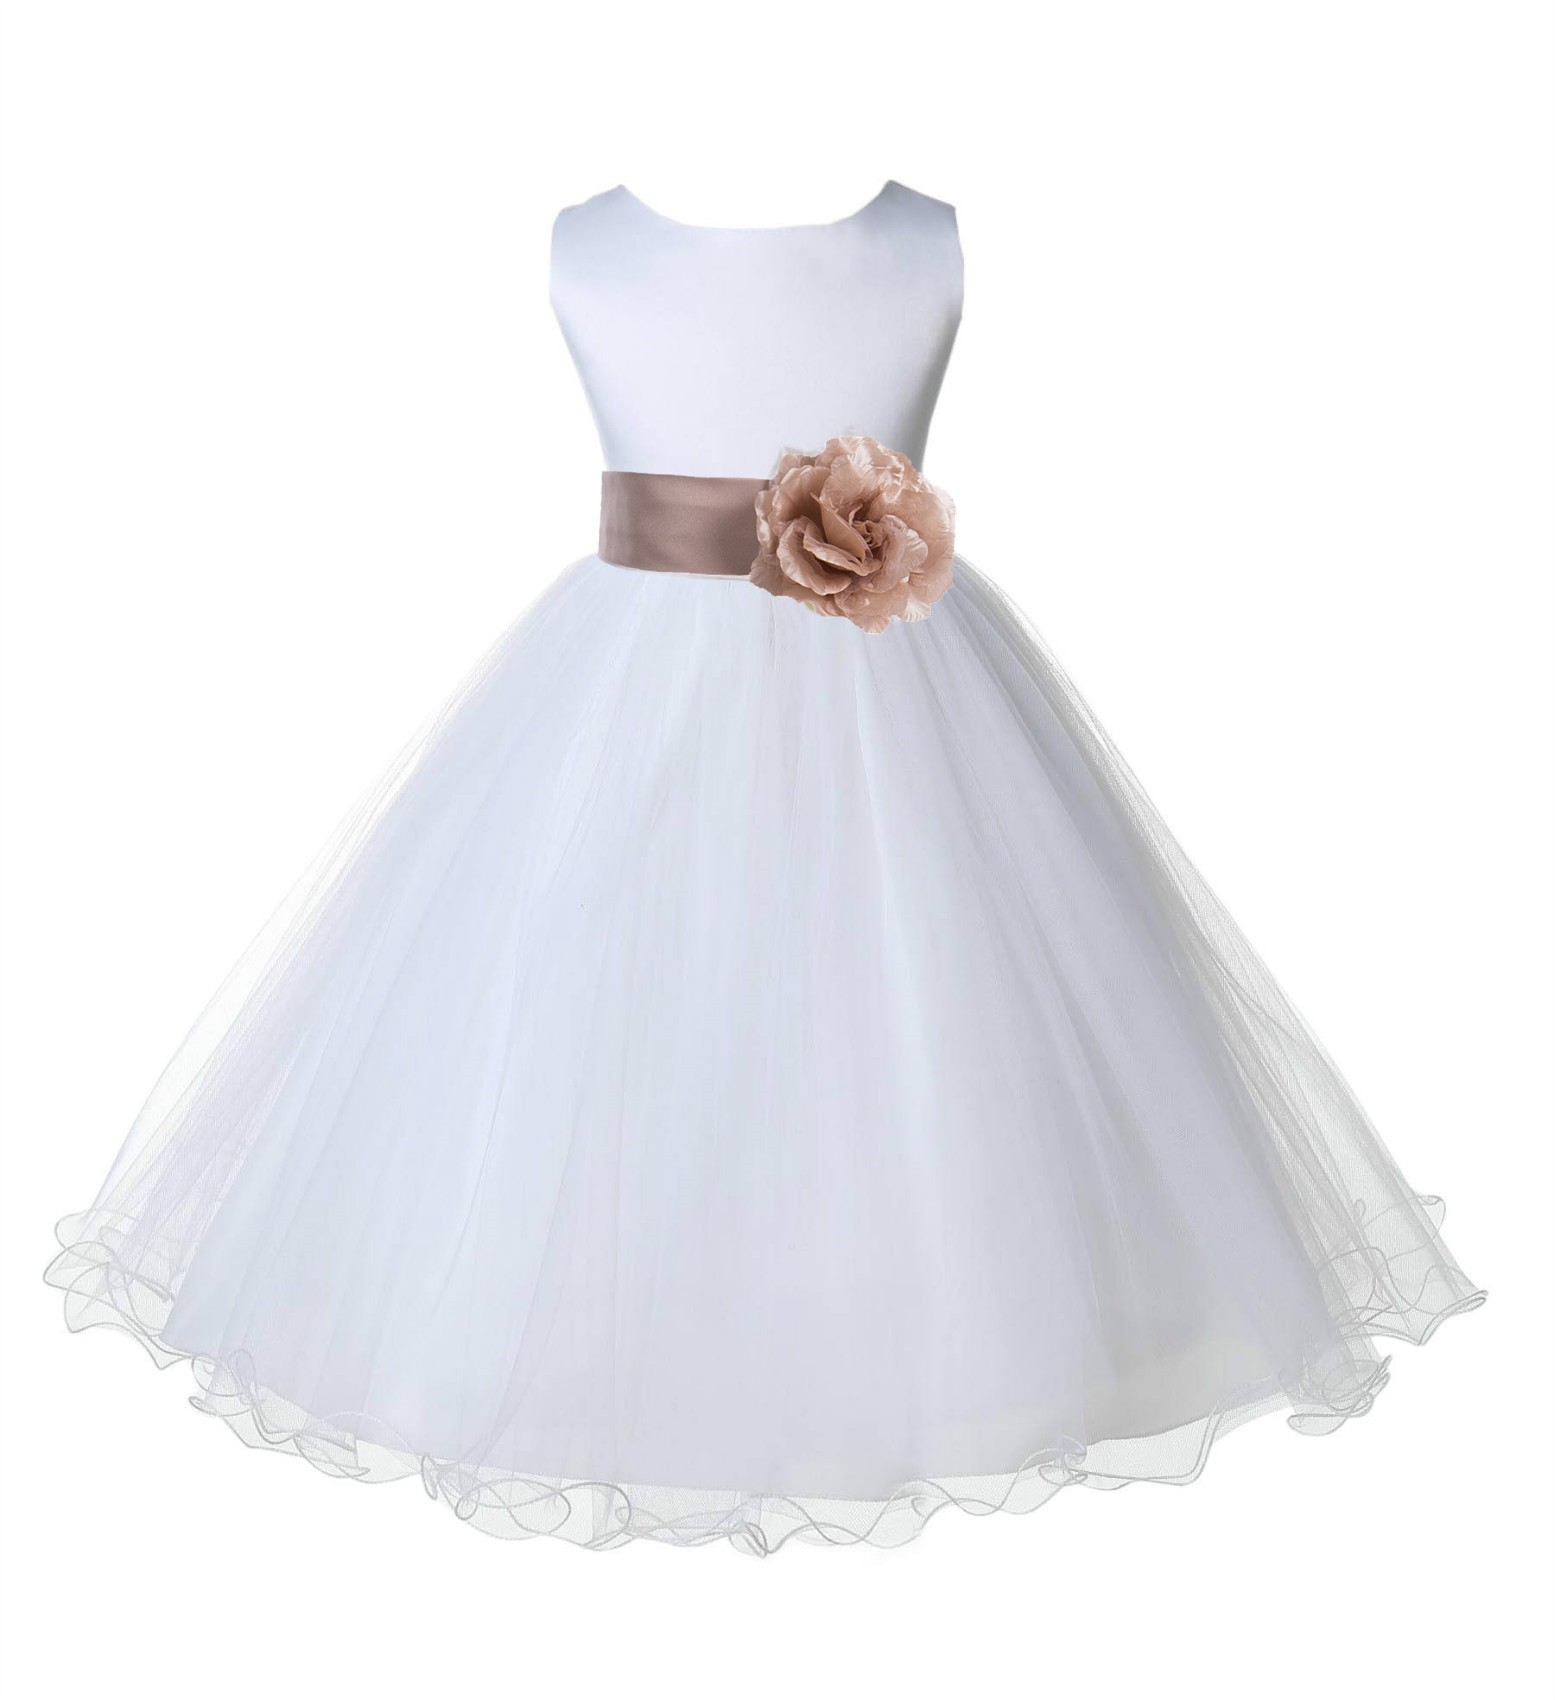 White/Rose Gold Tulle Rattail Edge Flower Girl Dress Wedding Bridal 829S